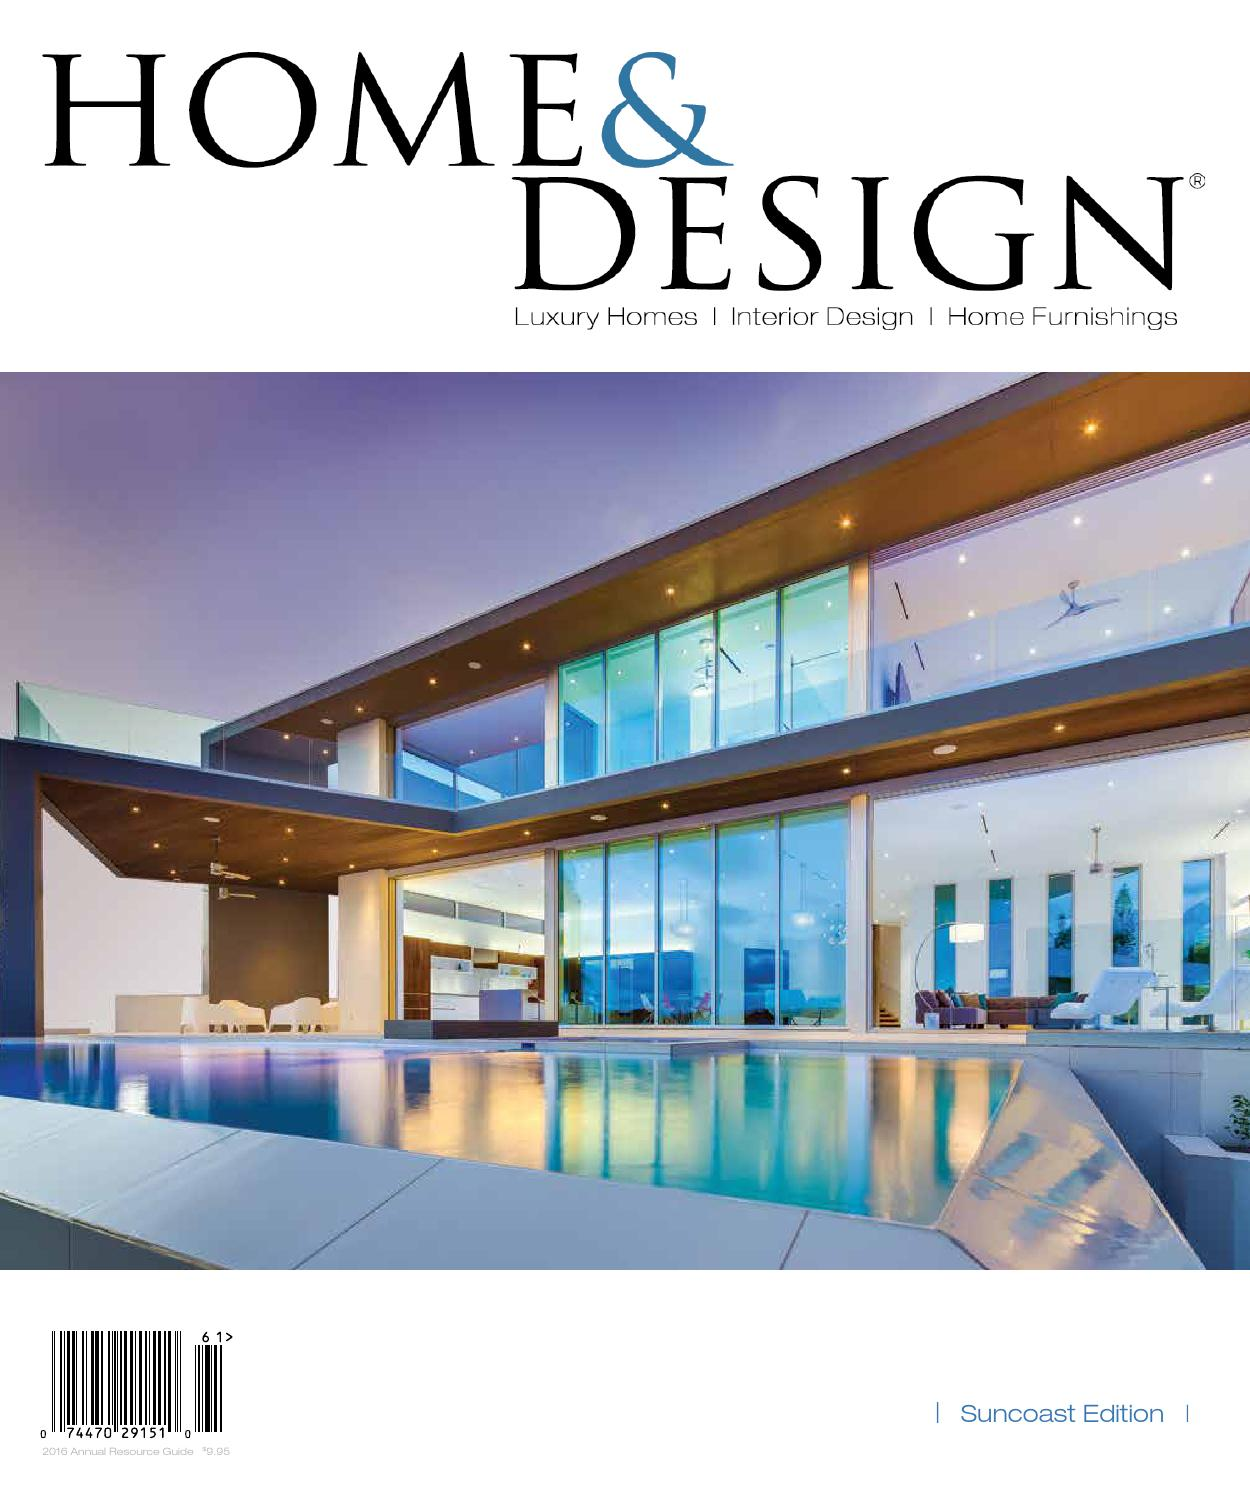 Home Design Magazine Annual Resource Guide 2016 Suncoast Florida Edition By Anthony Spano